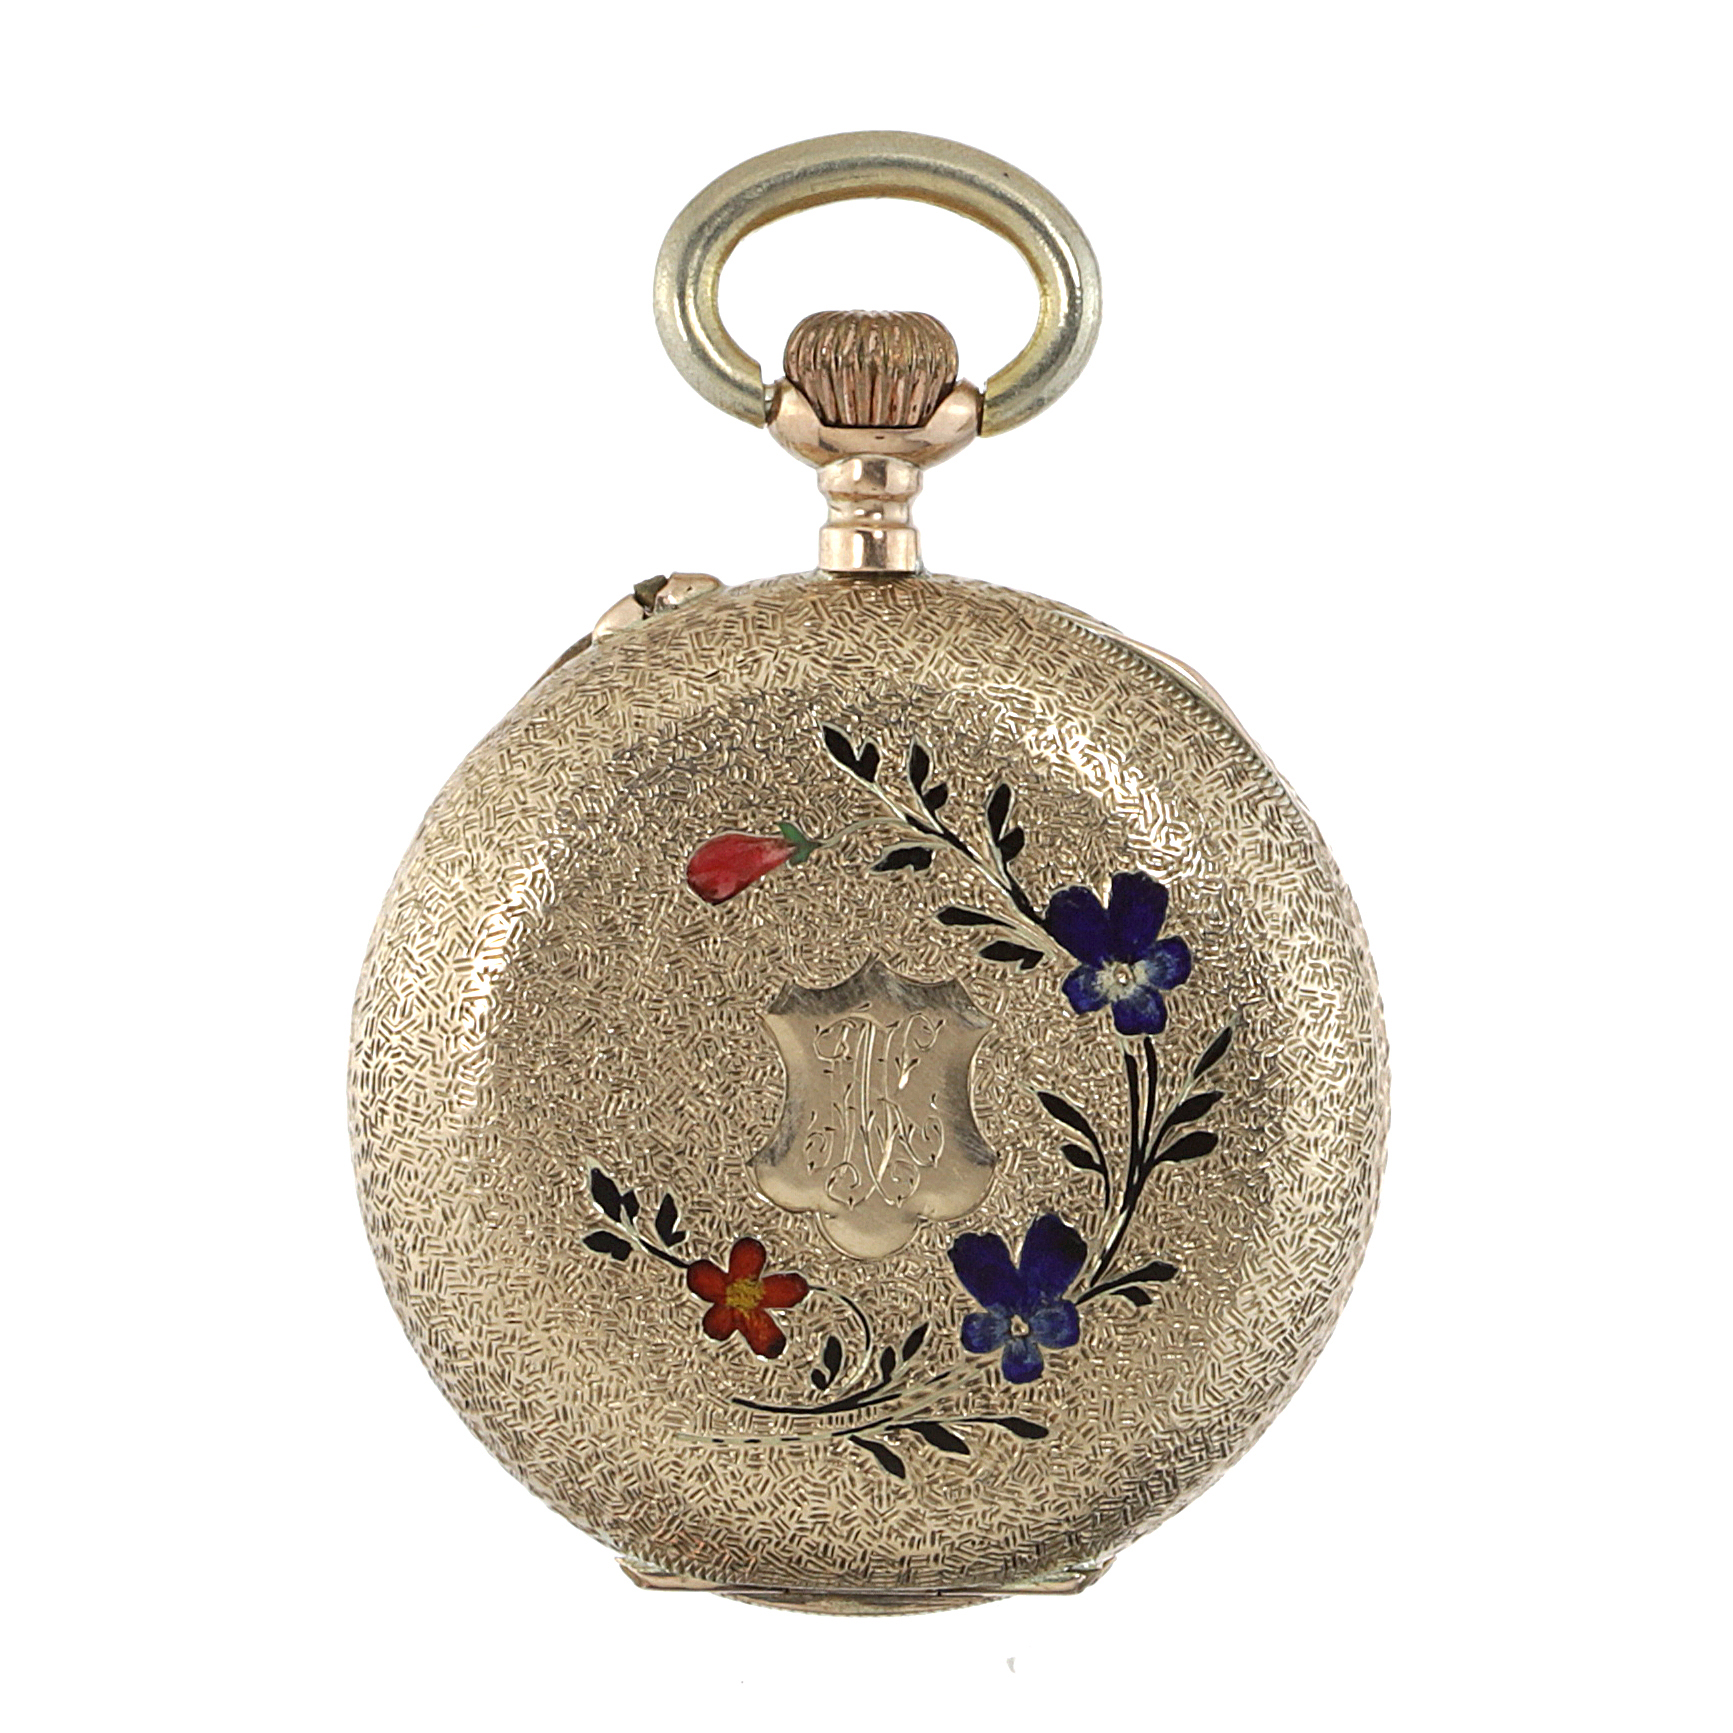 Los 416 - AN ENAMEL POCKET WATCH the circular case decorated with textured engraving and varicoloured enamel